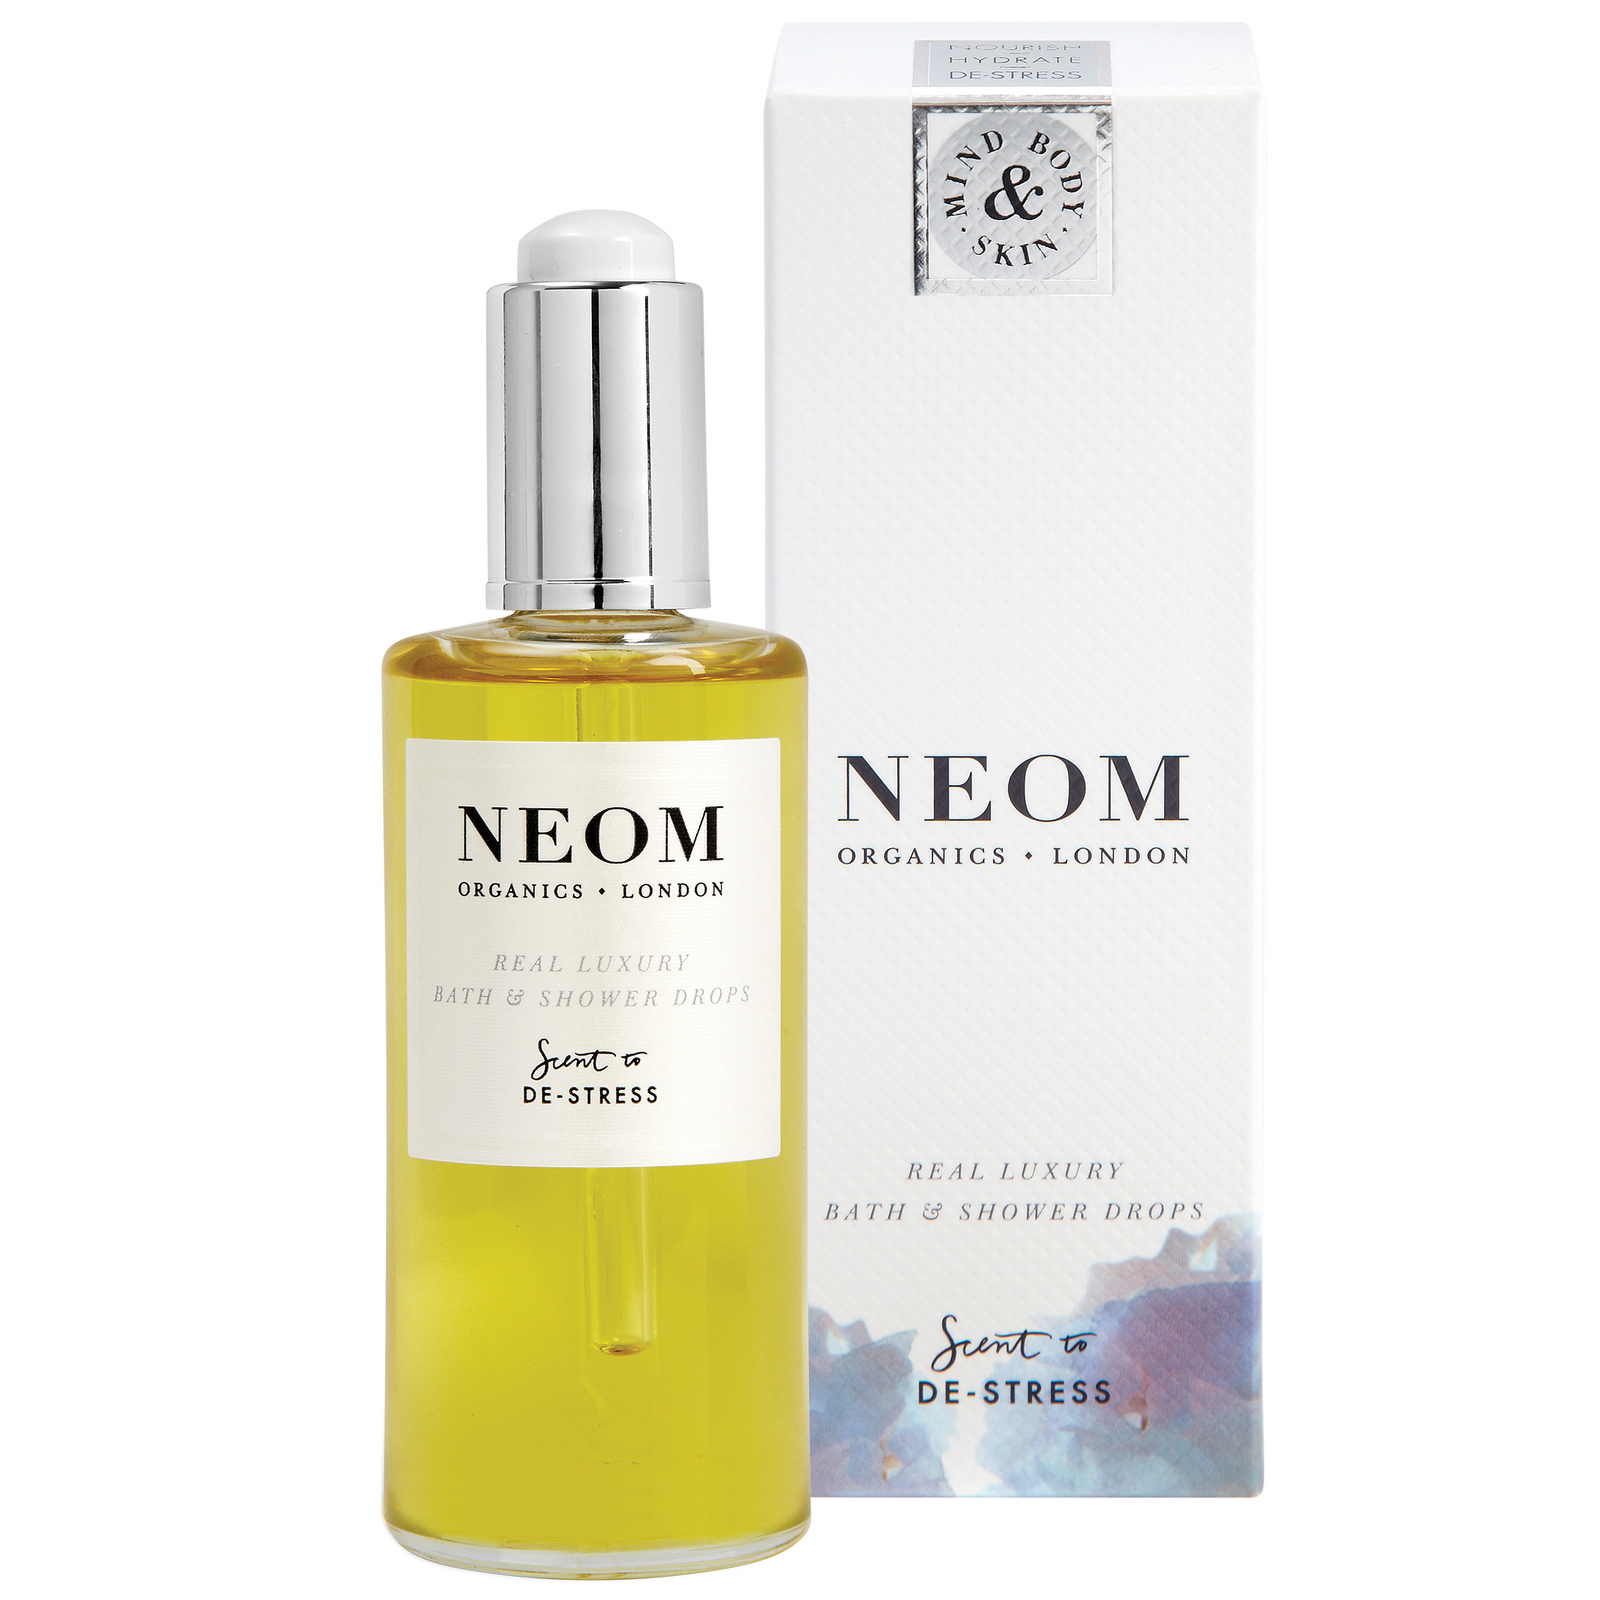 Neom Organics London Scent To De-Stress Real Luxury Bath & Shower Drops 100ml